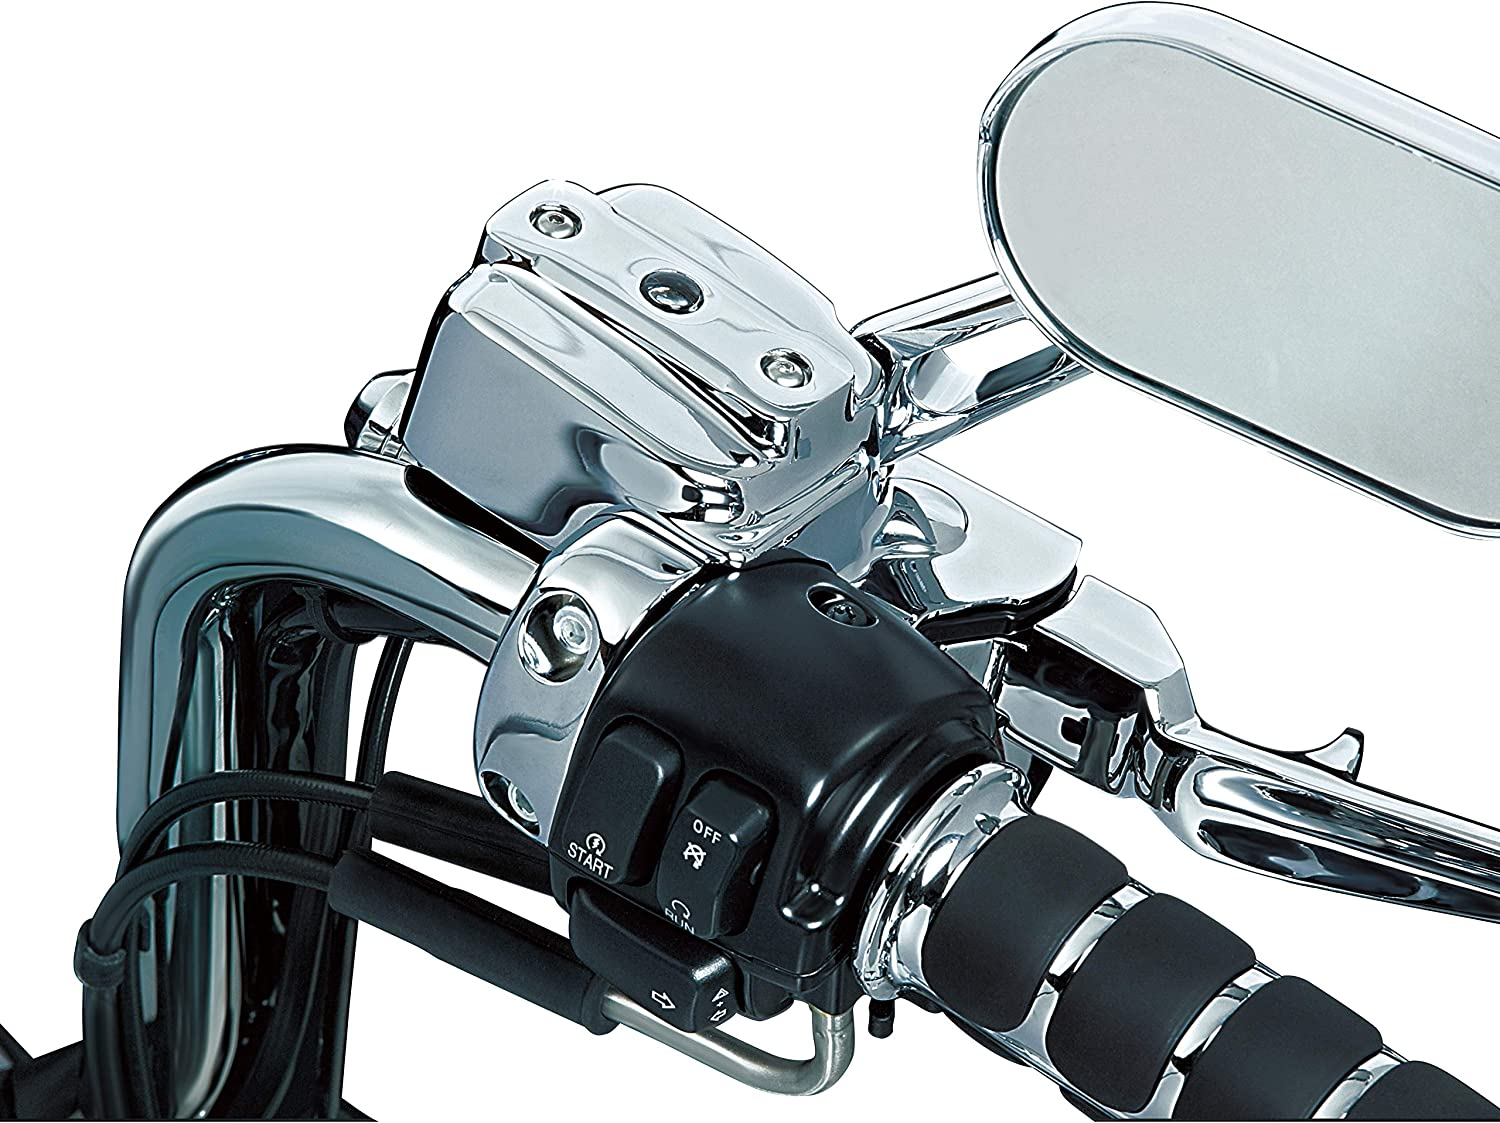 Complete Chrome Replacement Brake and Clutch Control Dress-Up Kit for 1996-2017 Harley-Davidson Motorcycles Dual Disc Kuryakyn 9119 Motorcycle Handlebar Accessory